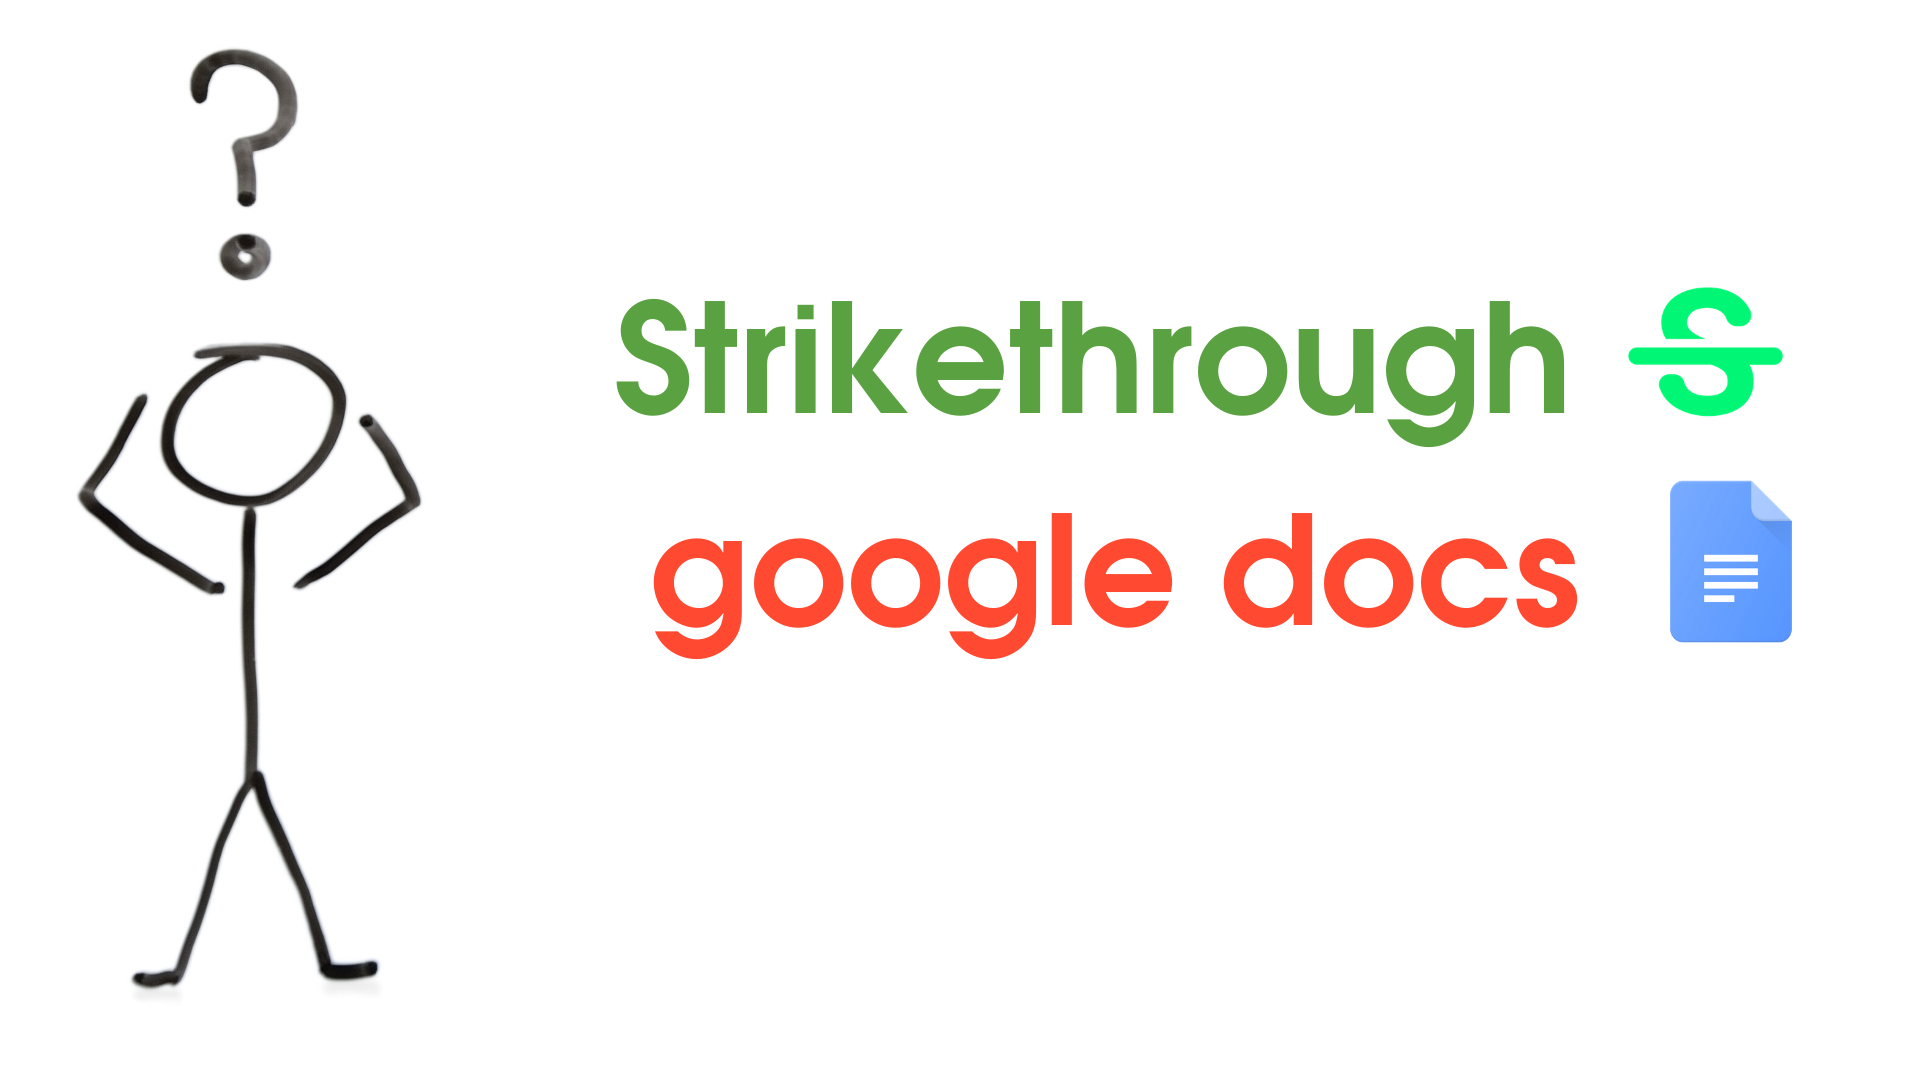 How to Add Strikethrough in Google Docs with shortcut keys